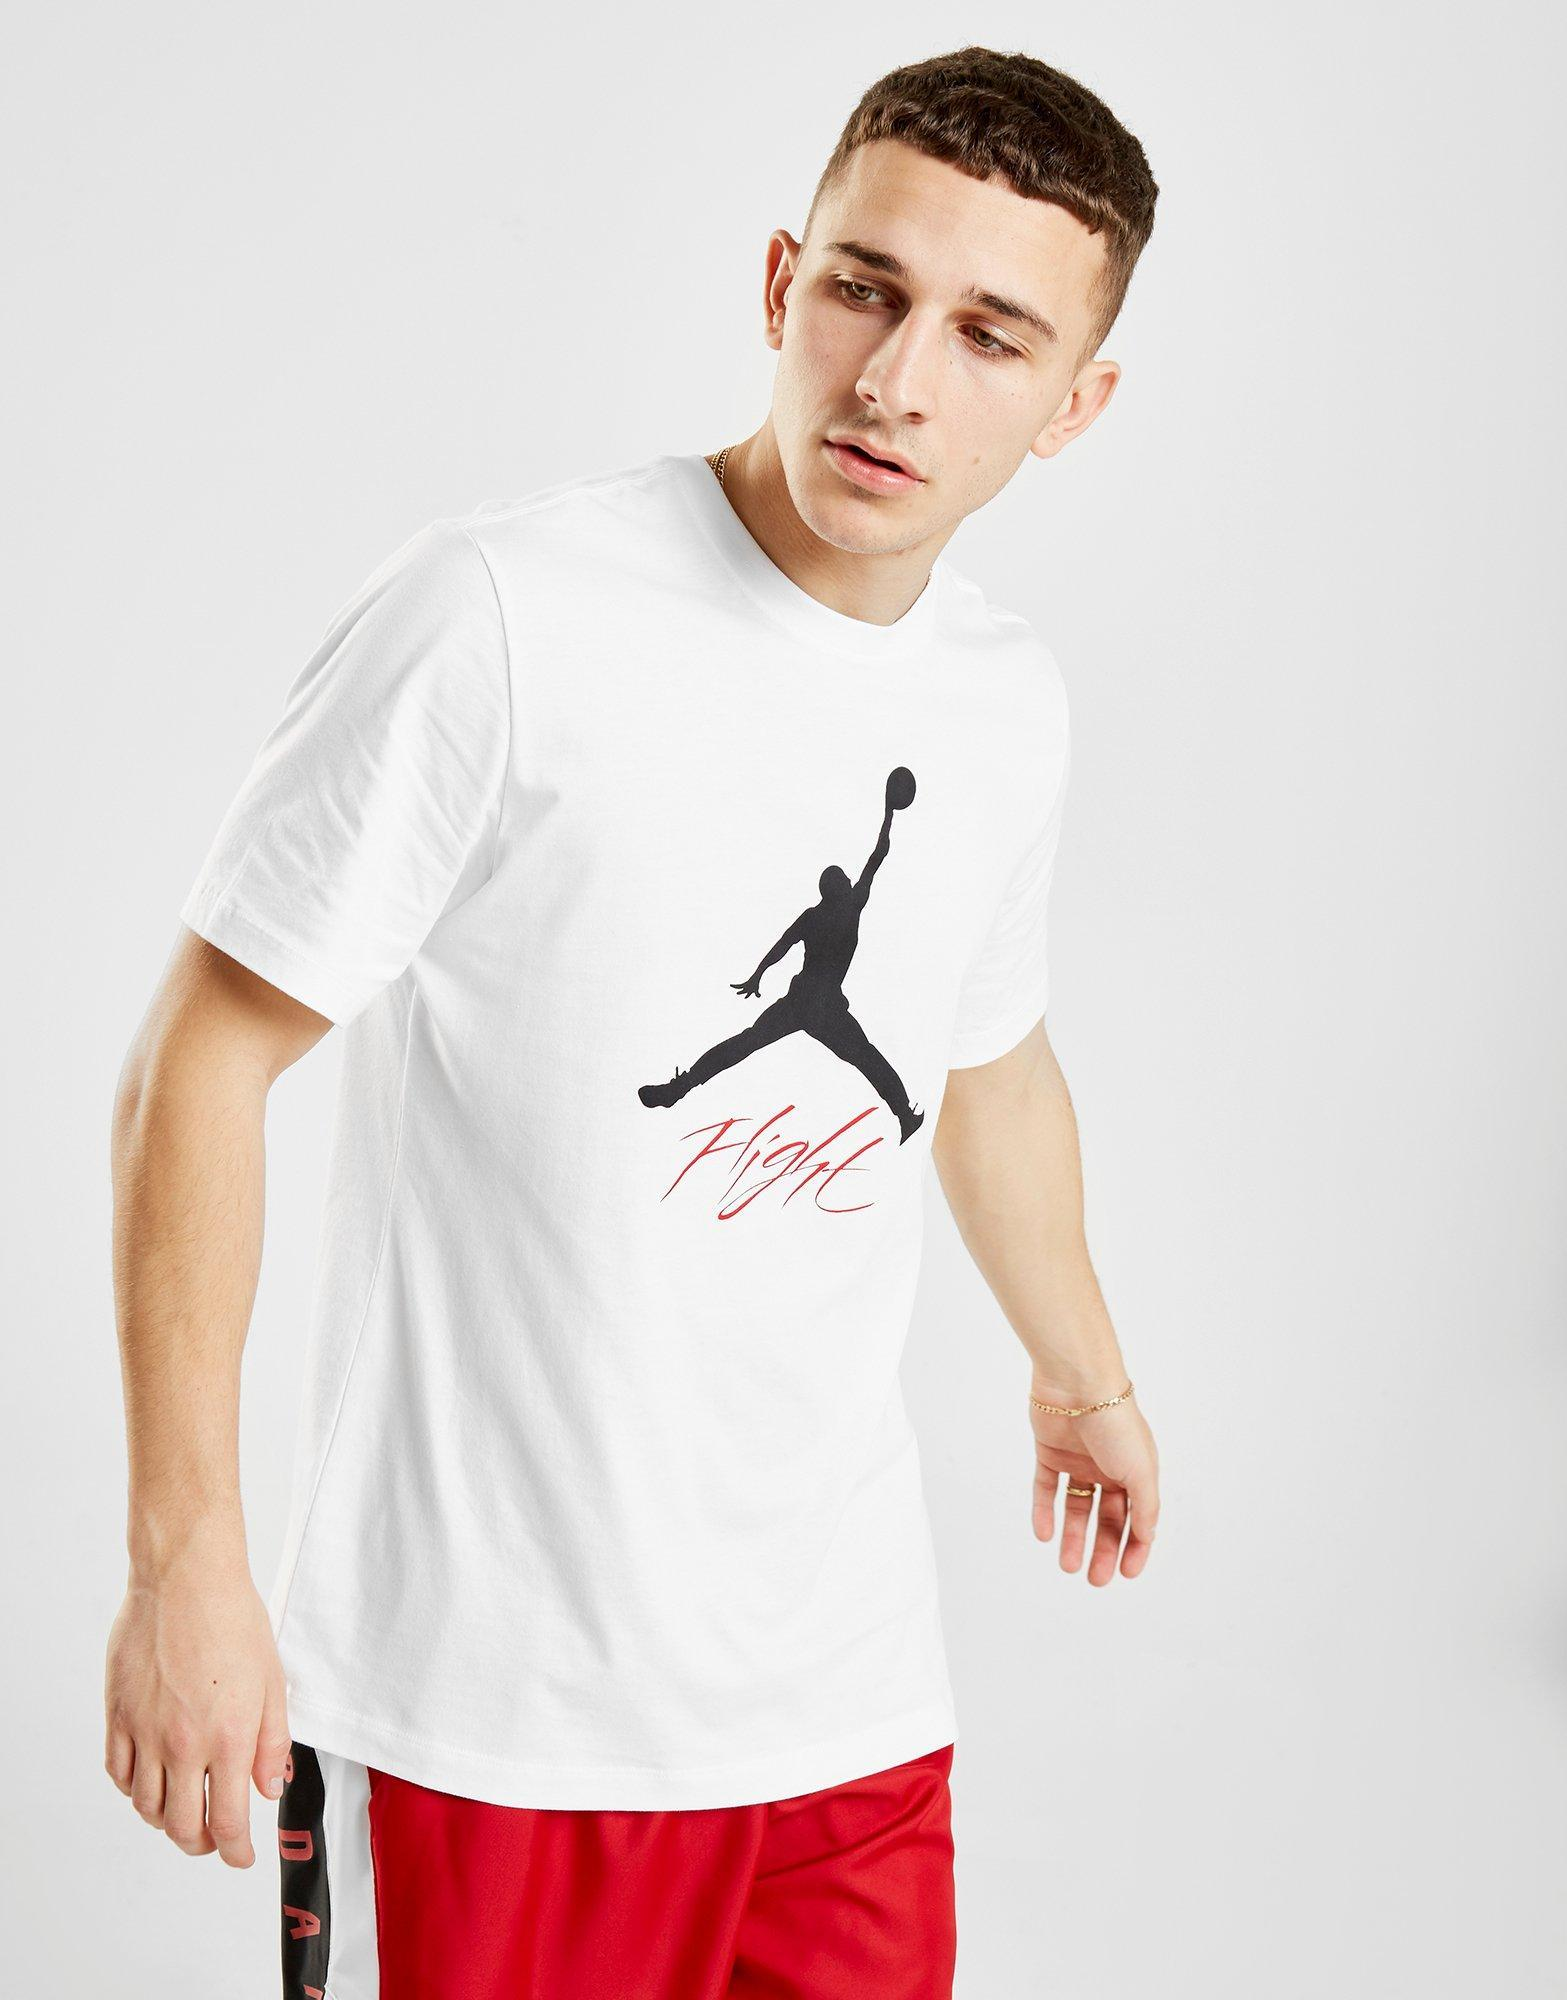 d70f6f48549542 Lyst - Nike Jumpman Flight T-shirt in White for Men